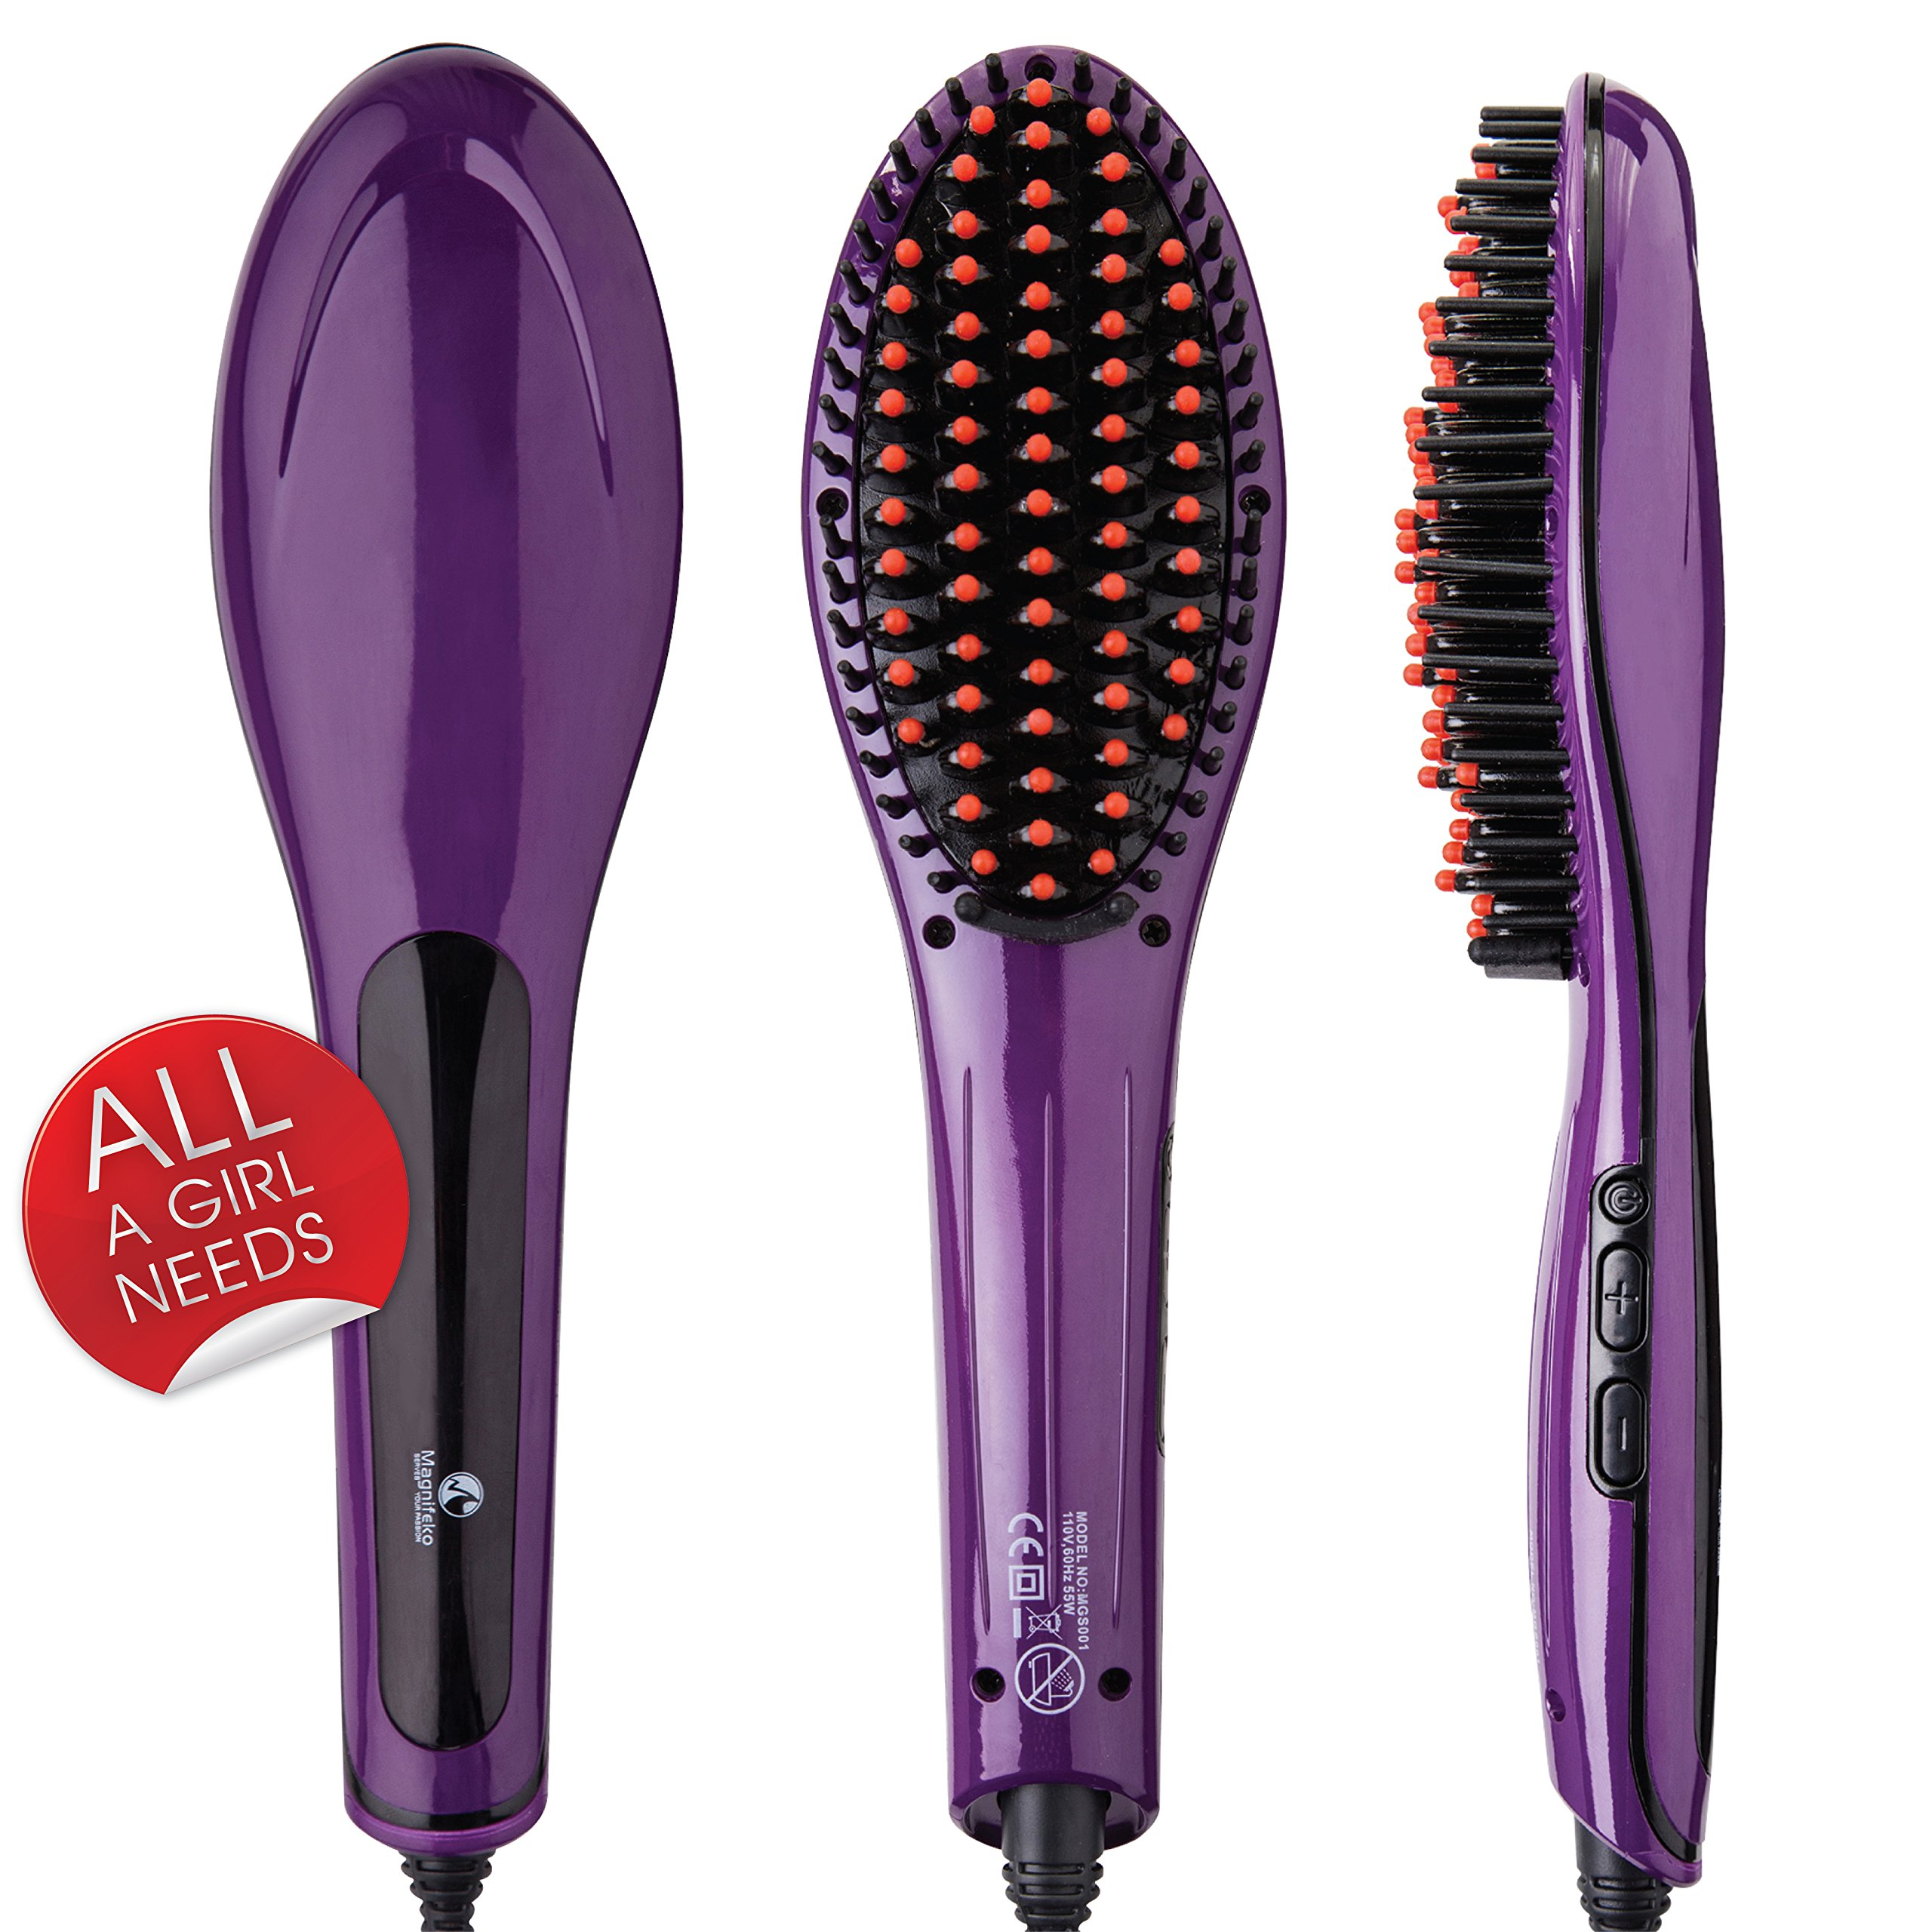 magnifeko hair straightener brush